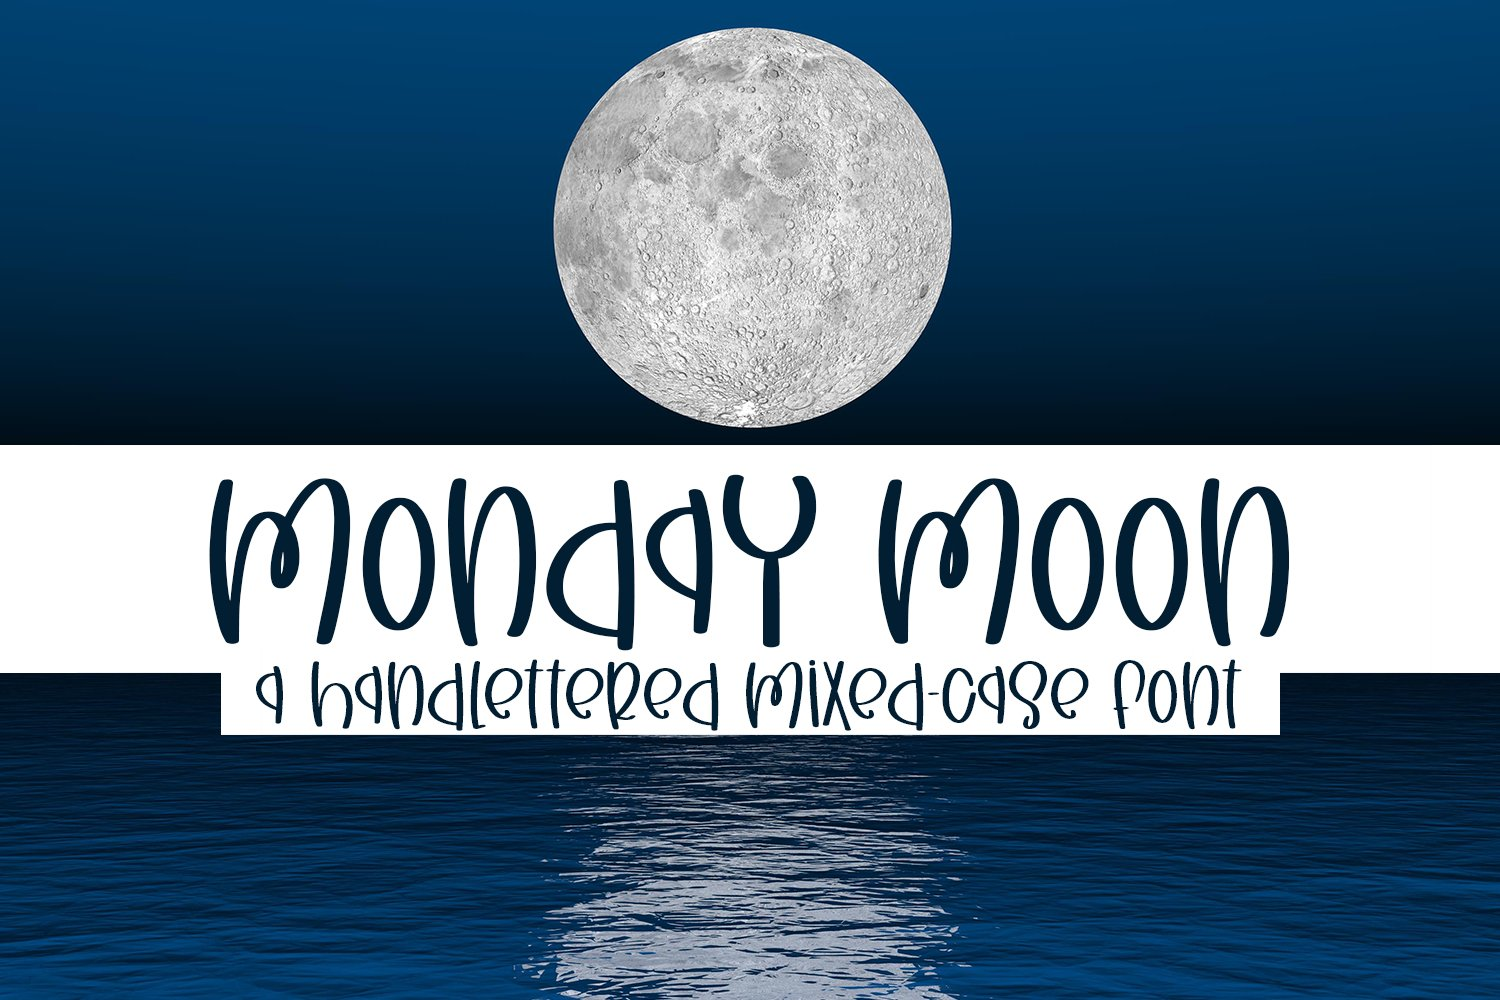 Monday Moon - A Handlettered Mixed-Case Font example image 1